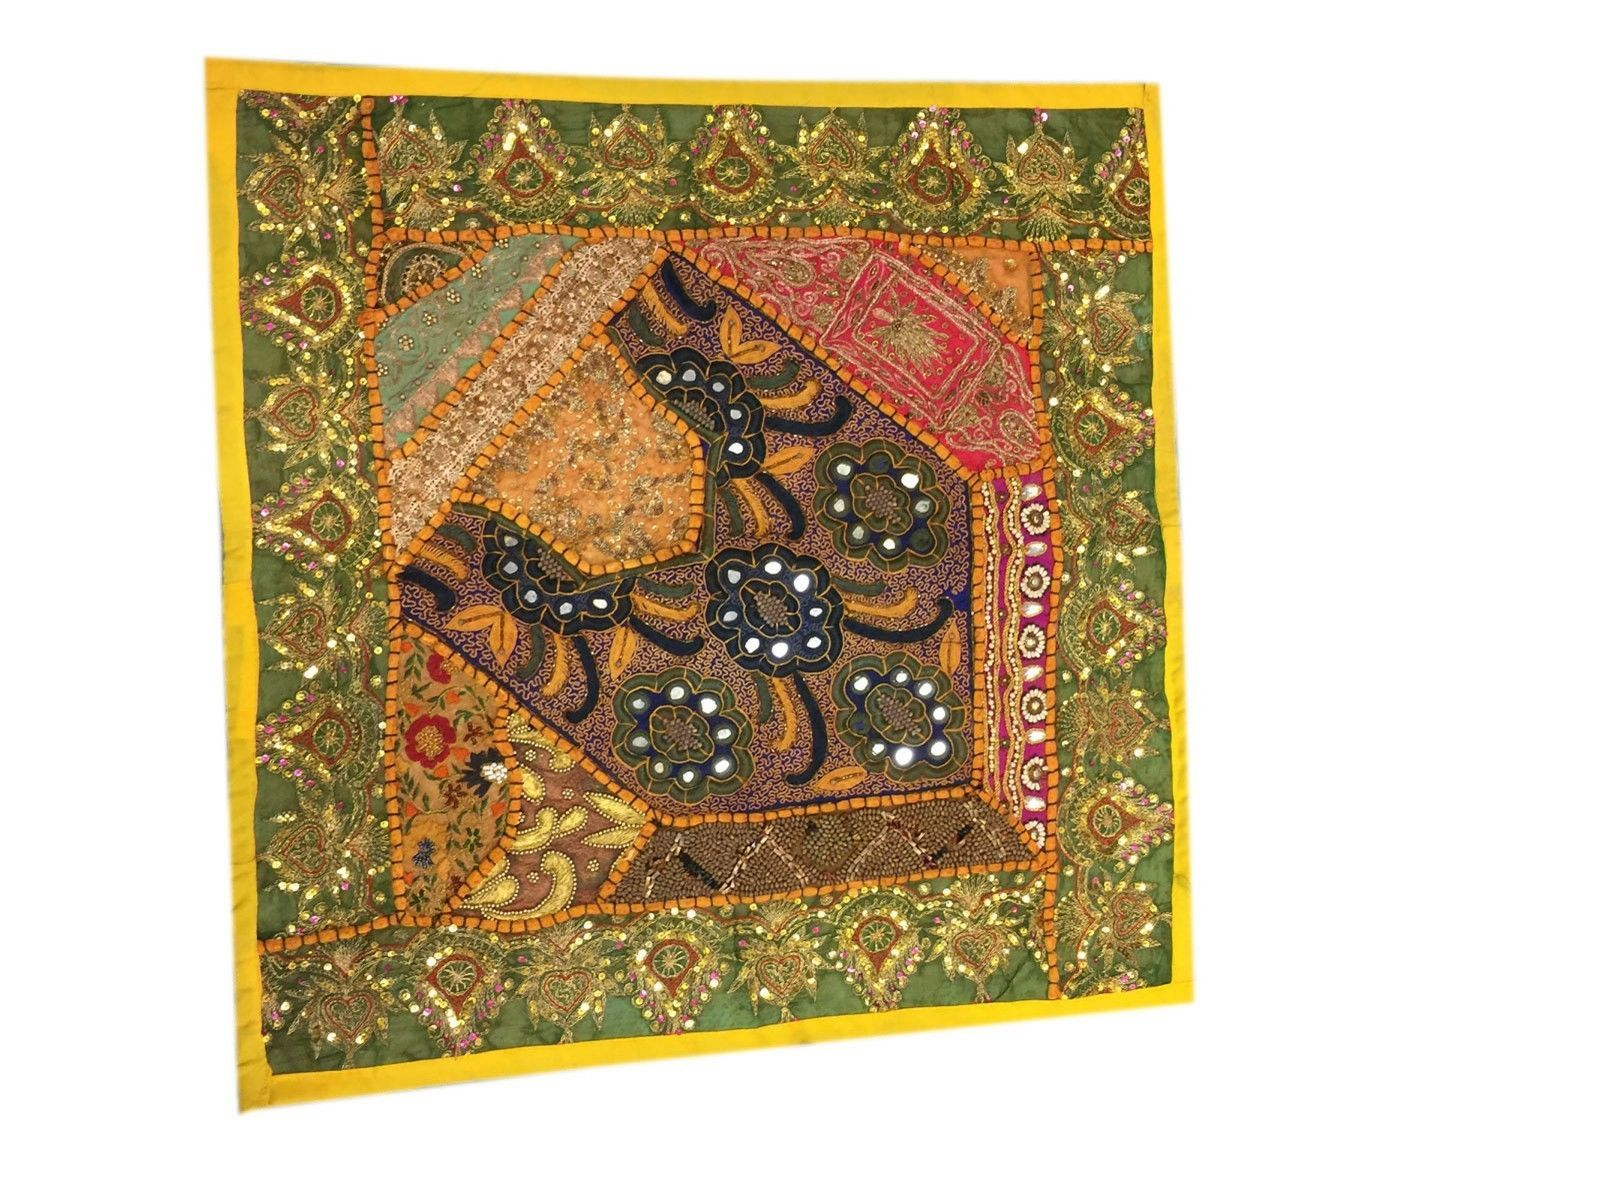 INDIAN EMBROIDERED CUSHION COVER HANDMADE PATCHWORK VINTAGE PILLOW CASE   eBay    http://stores.ebay.com/mogulgallery/DECORATIVE-CUSHION-COVERS-/_i.html?_fsub=353416719&_sid=3781319&_trksid=p4634.c0.m322